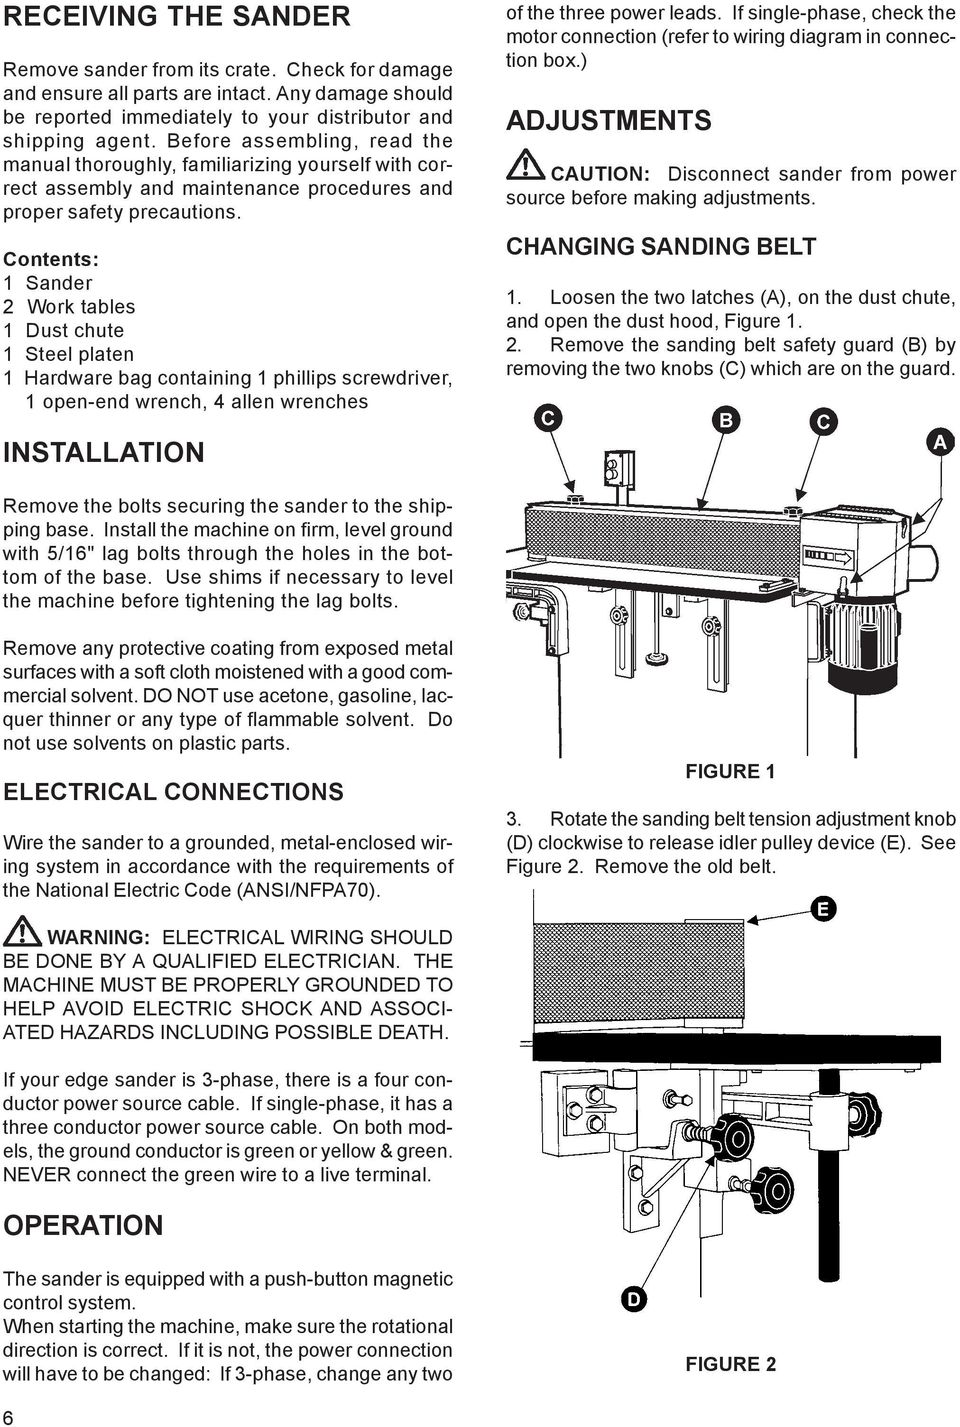 Edge Sander Model Pdf Disconnect Electrical Motor Connection Diagram Contents 1 2 Work Tables Dust Chute Steel Platen Hardware Bag